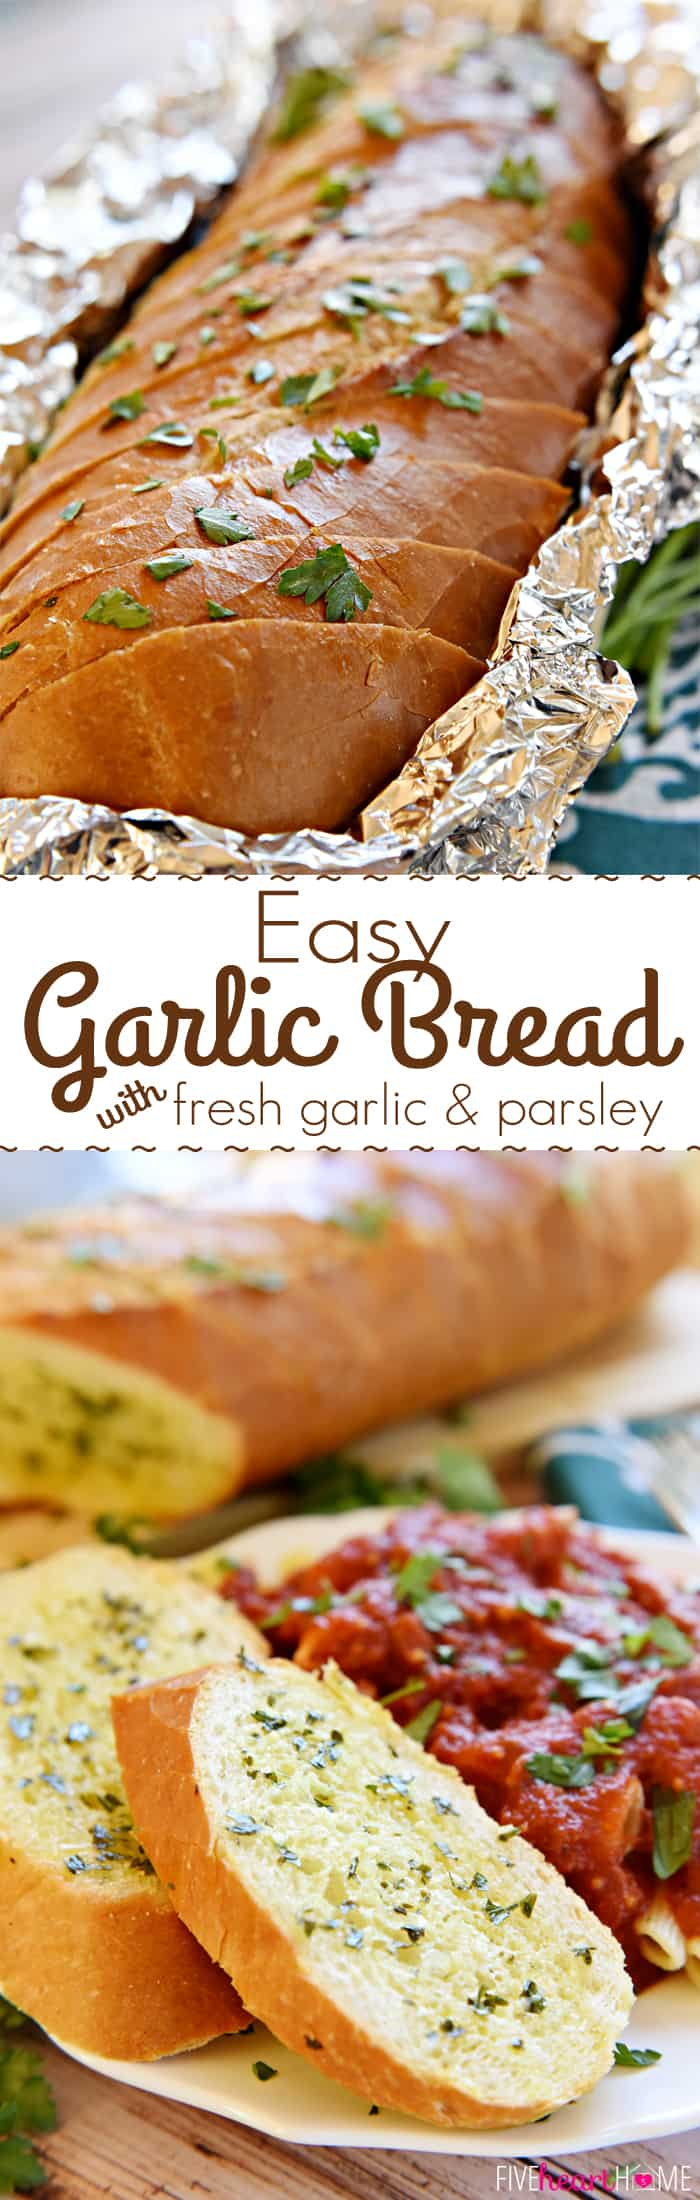 Garlic Bread with Fresh Garlic and Parsley Collage with Text Overlay